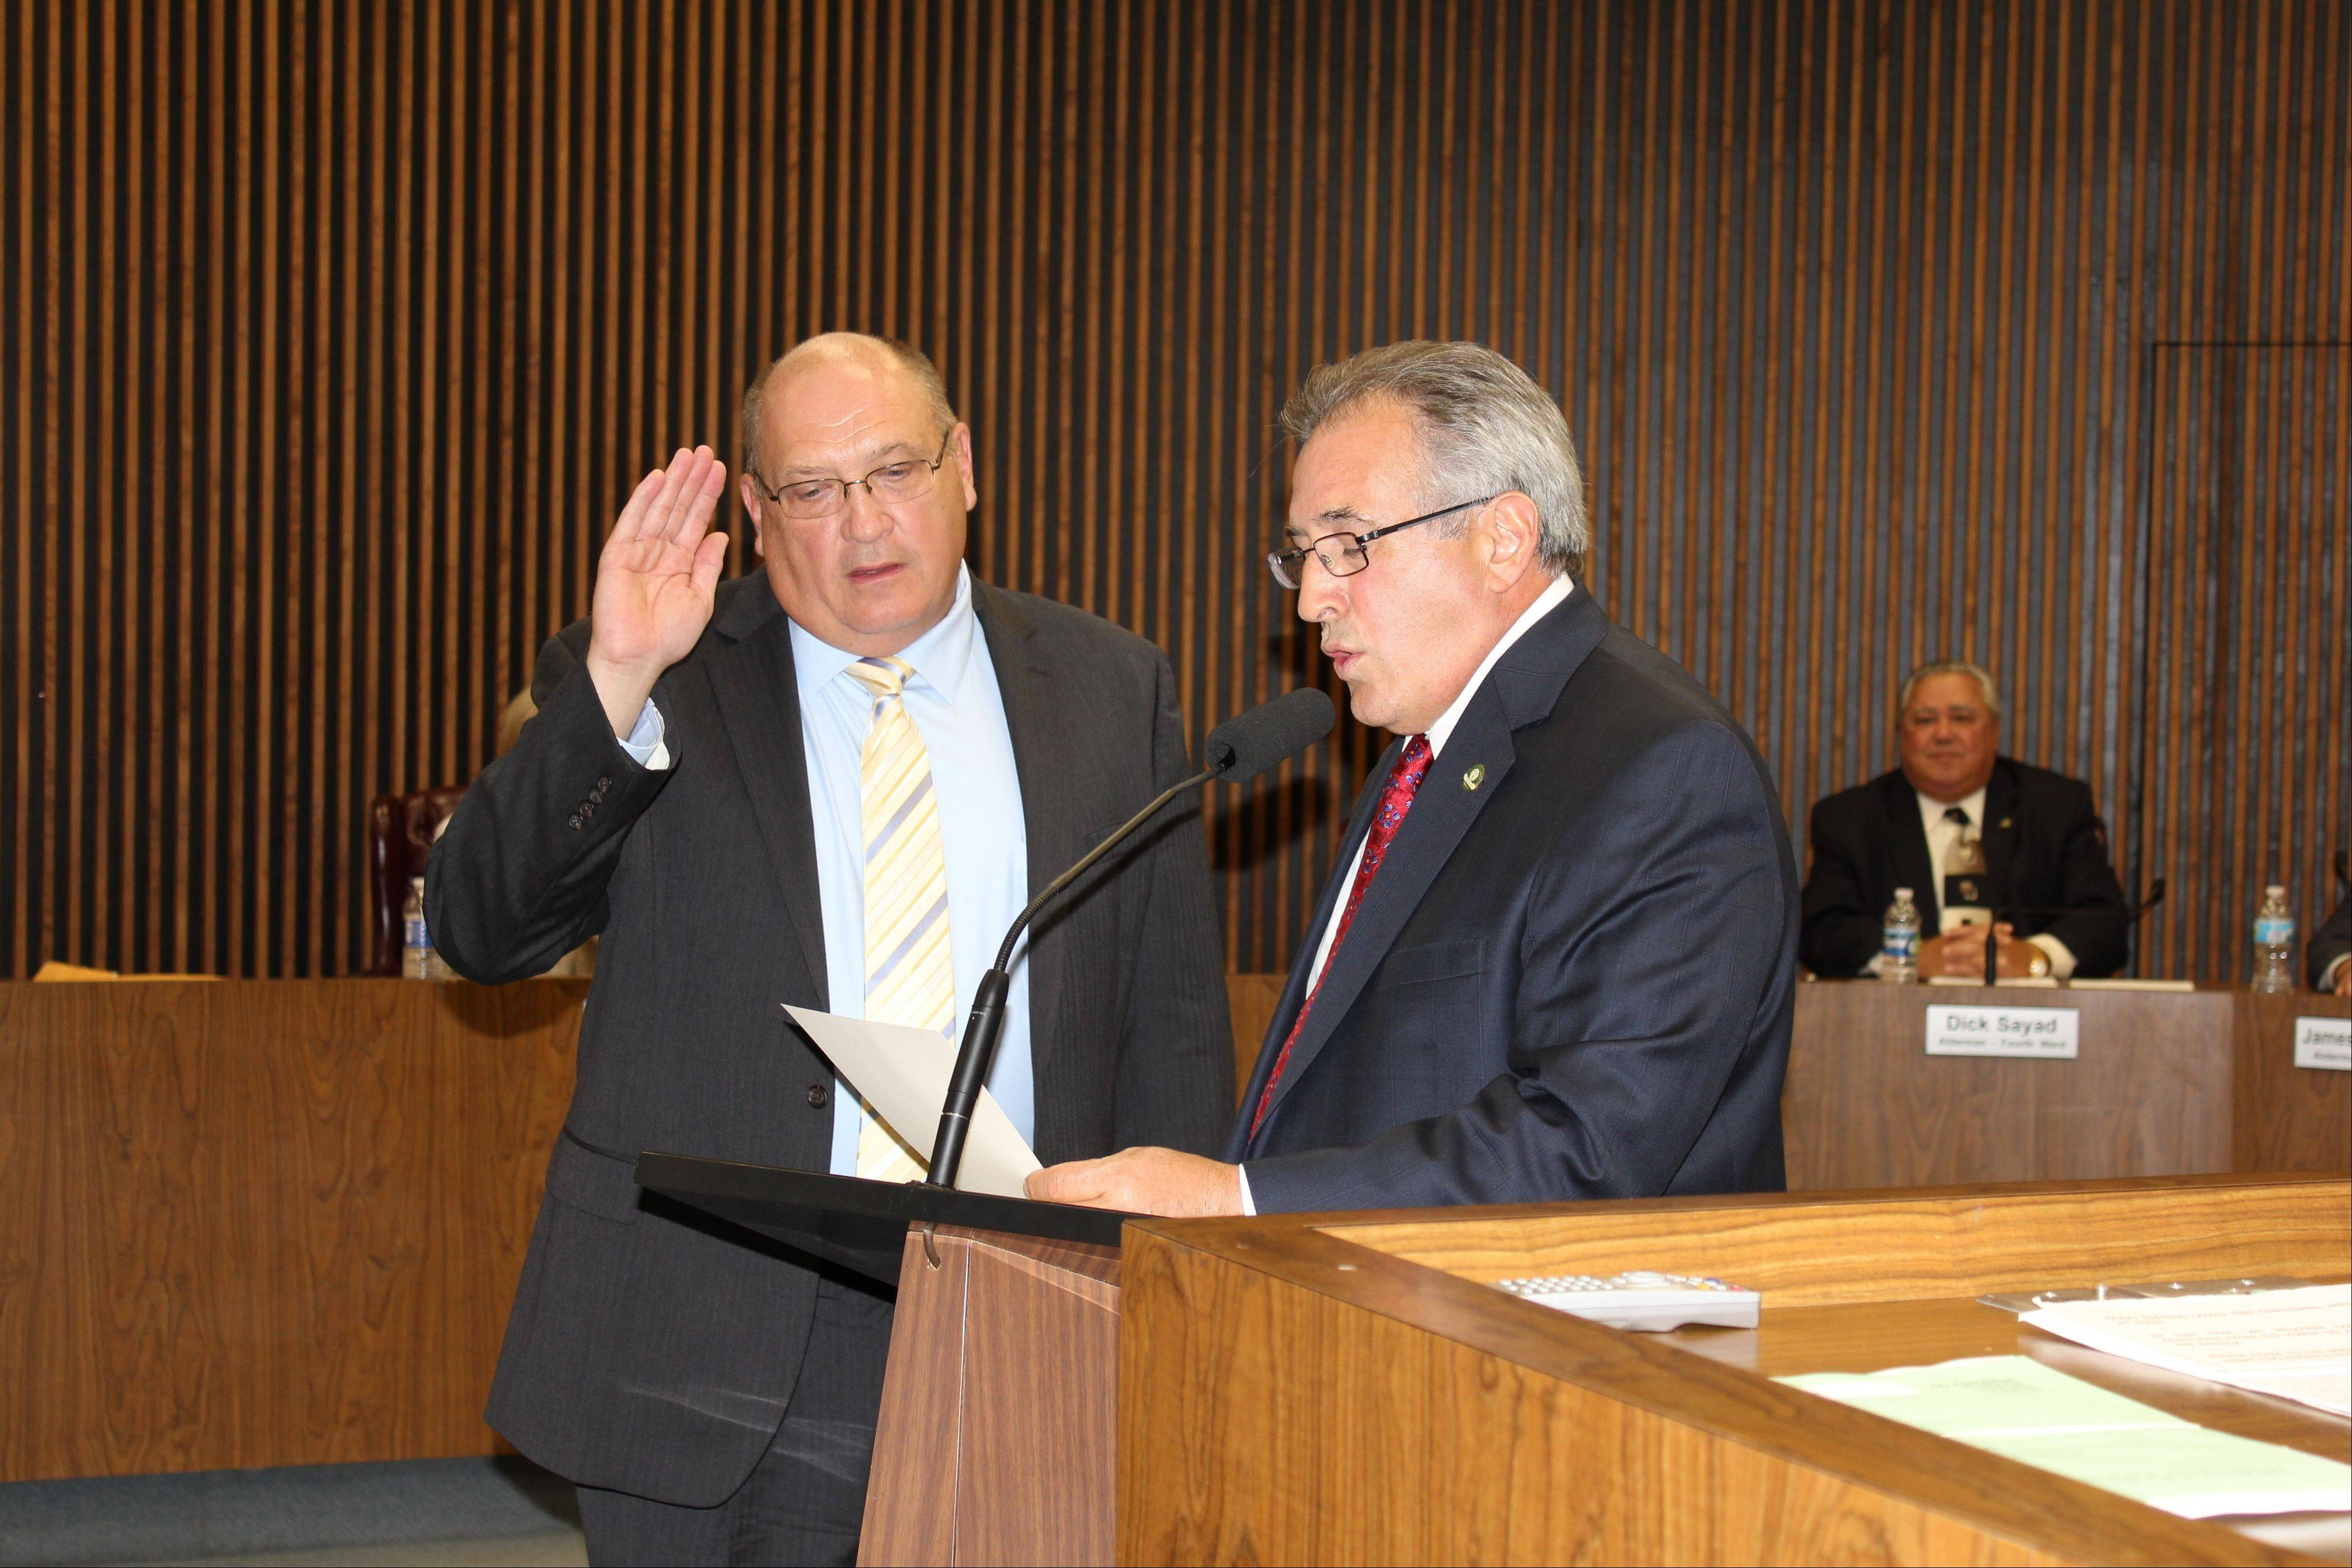 Des Plaines swears in new police chief amid turmoil